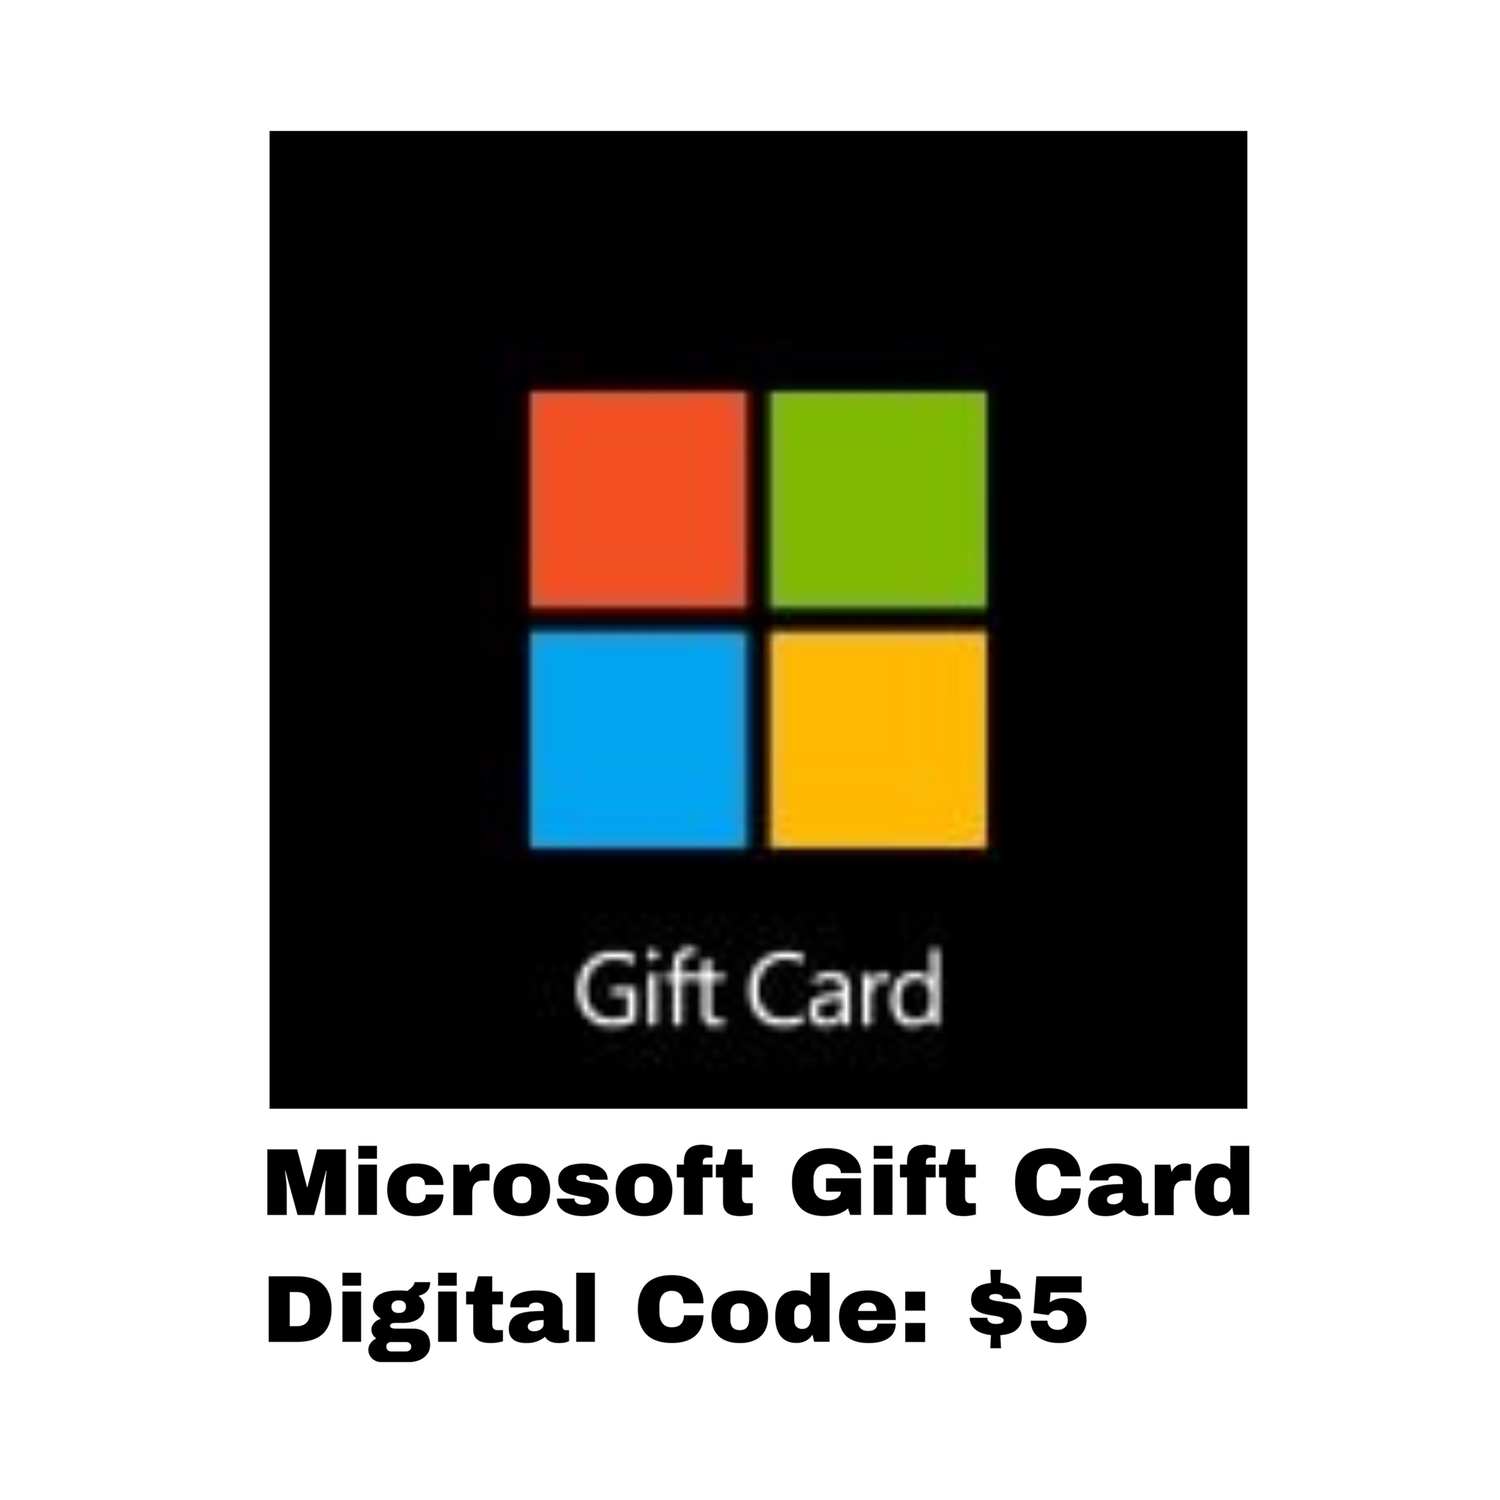 Microsoft Gift Card Digital Code: $5 - Windows / Xbox